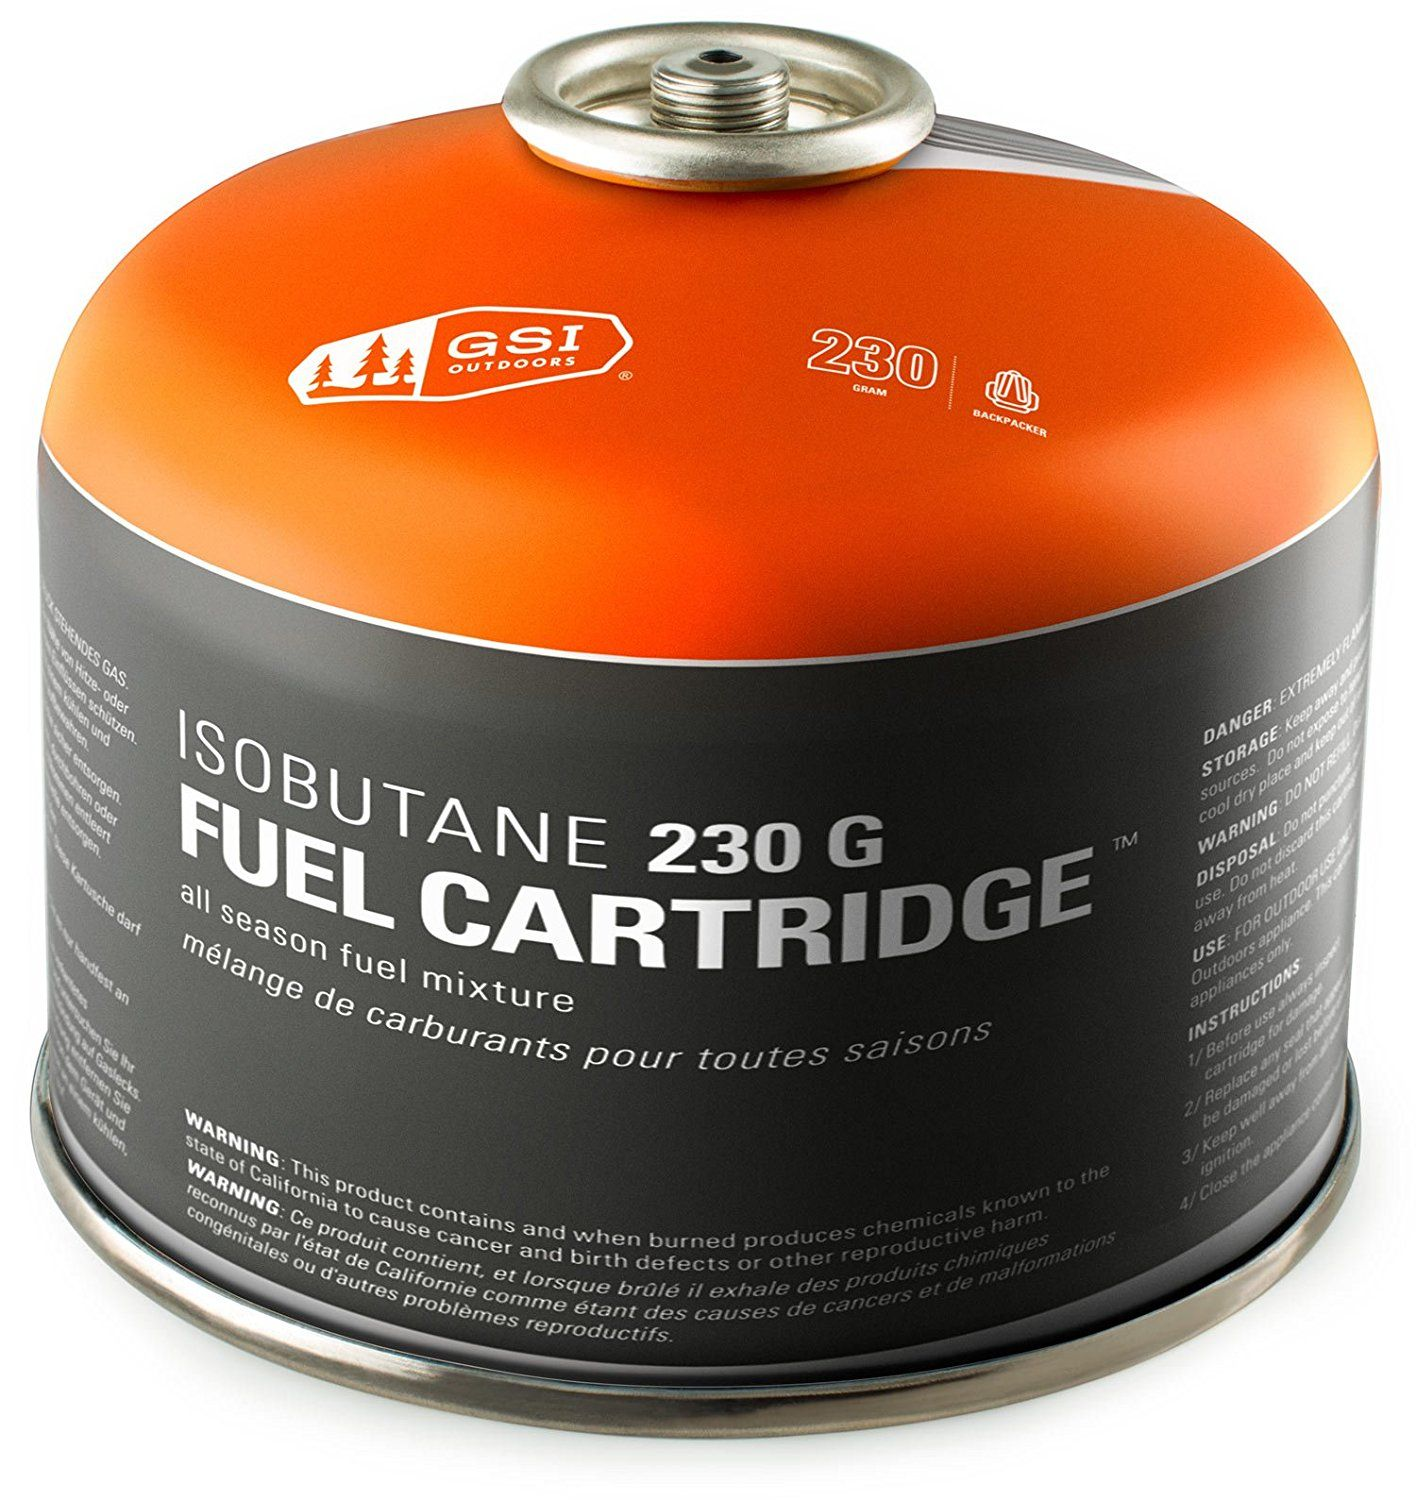 Gsi Iso Butane Gas Canister Four Season Mix This Is An